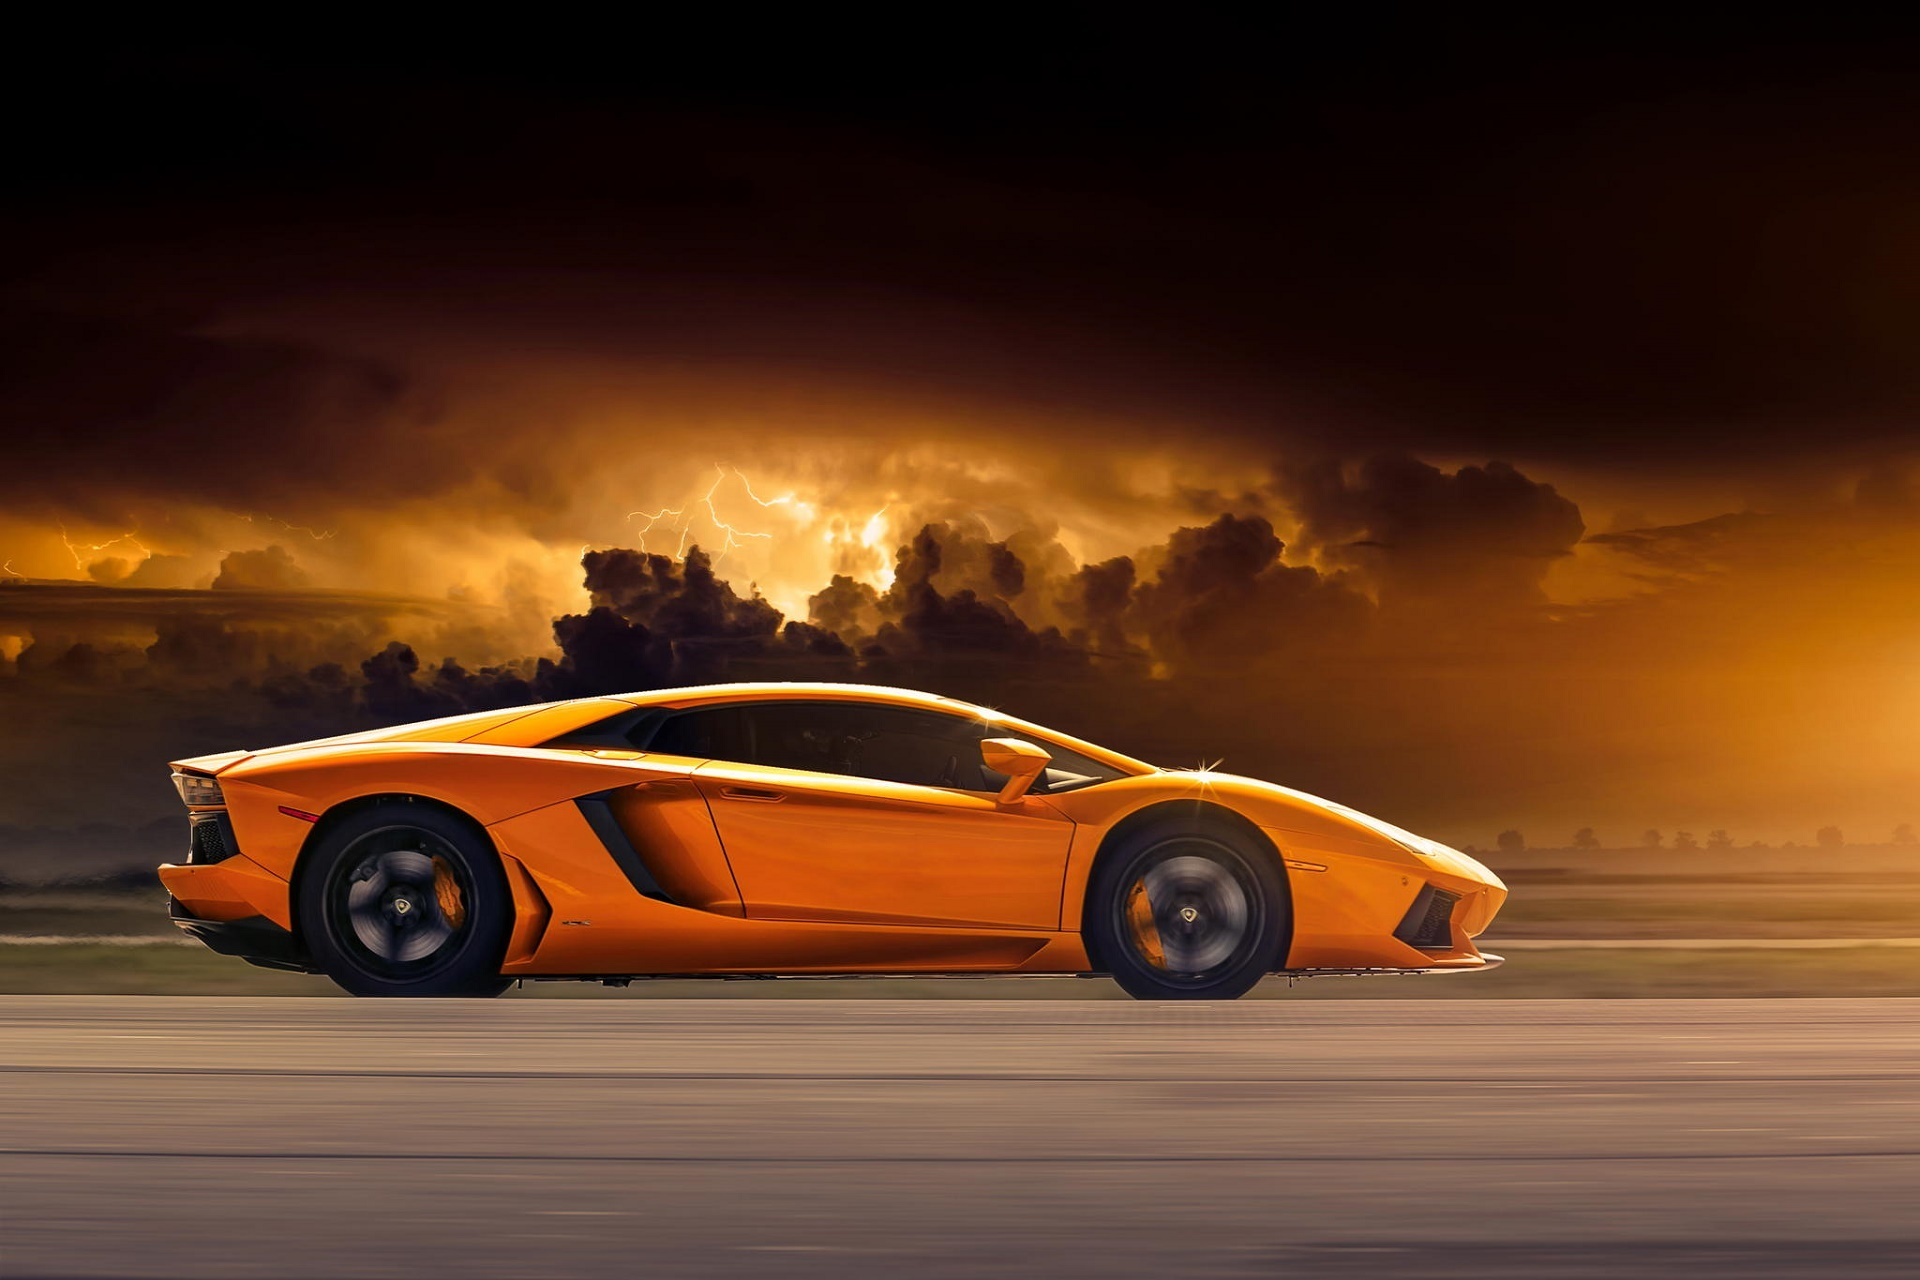 Free Hd Car Wallpaper Download For Pc Lamborghini Aventador High Resolution Pictures All Hd